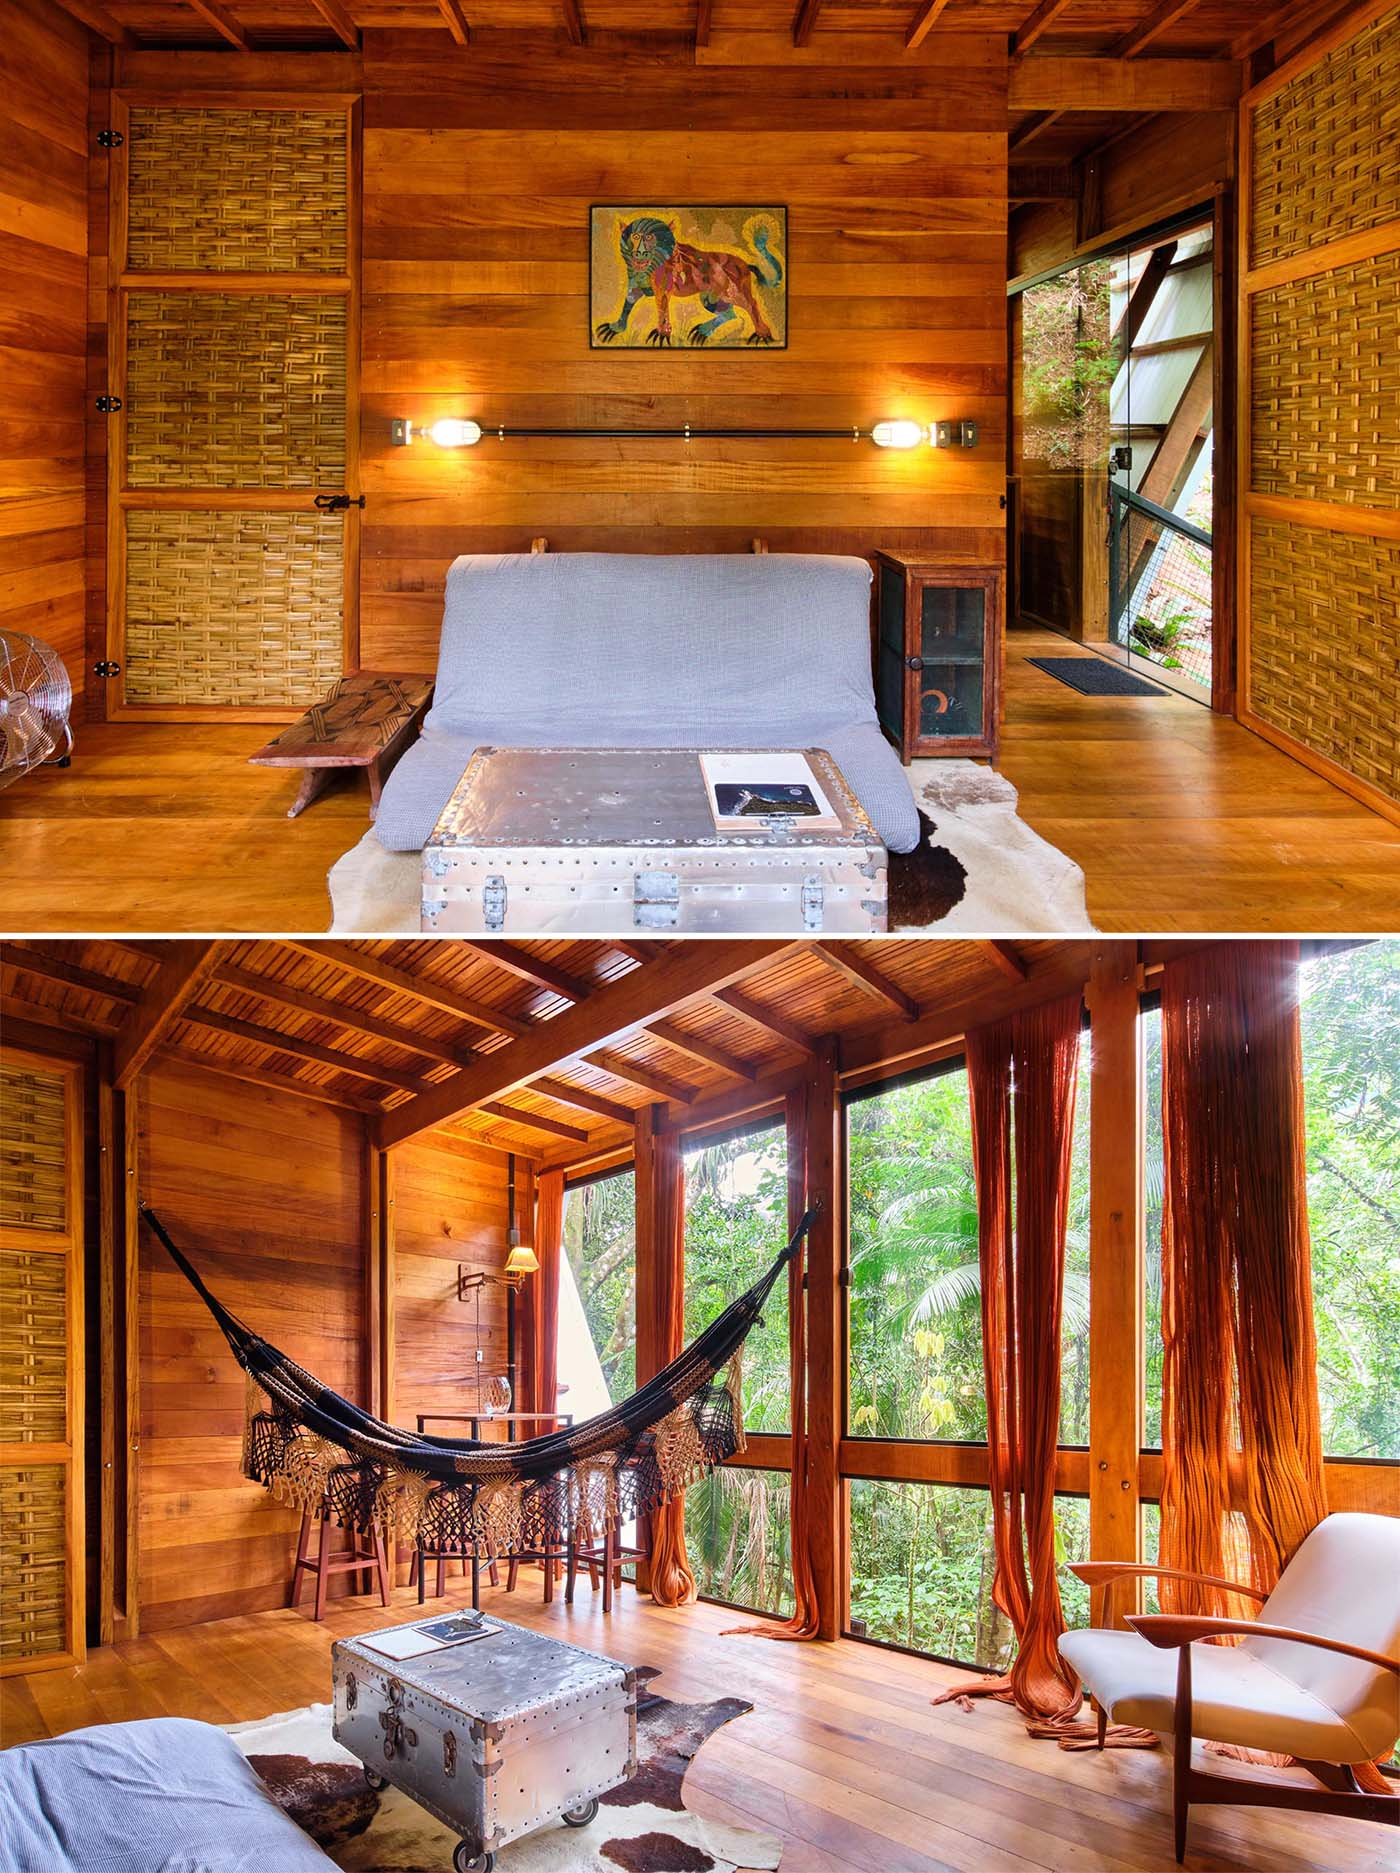 The living room and dining area of an A-frame cabin with a warm wood interior.